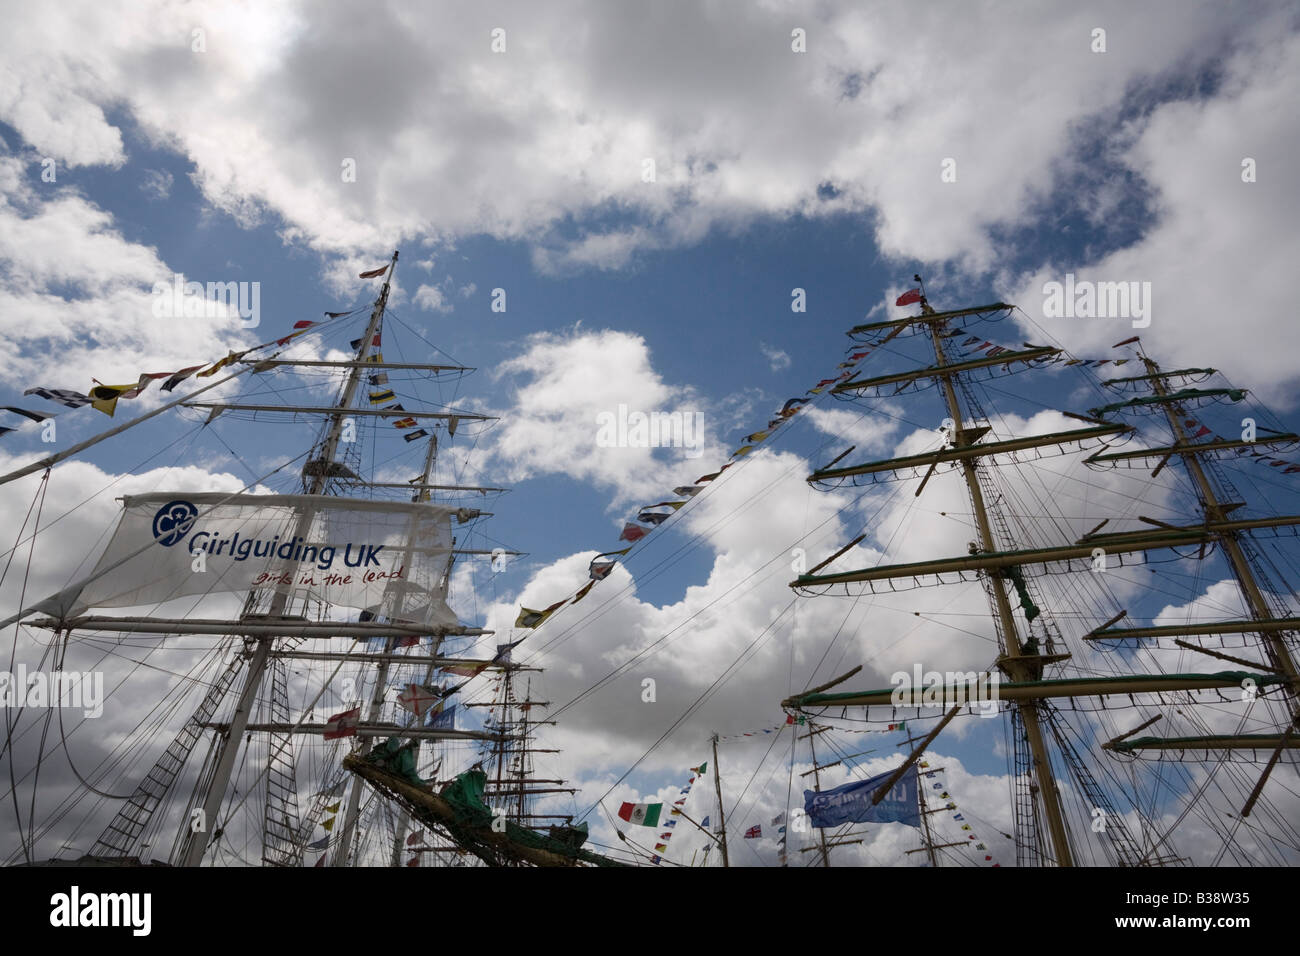 Square rigged masts on boats in Tall Ships race berthed at Wellington Dock Liverpool Merseyside England UK 2008 - Stock Image